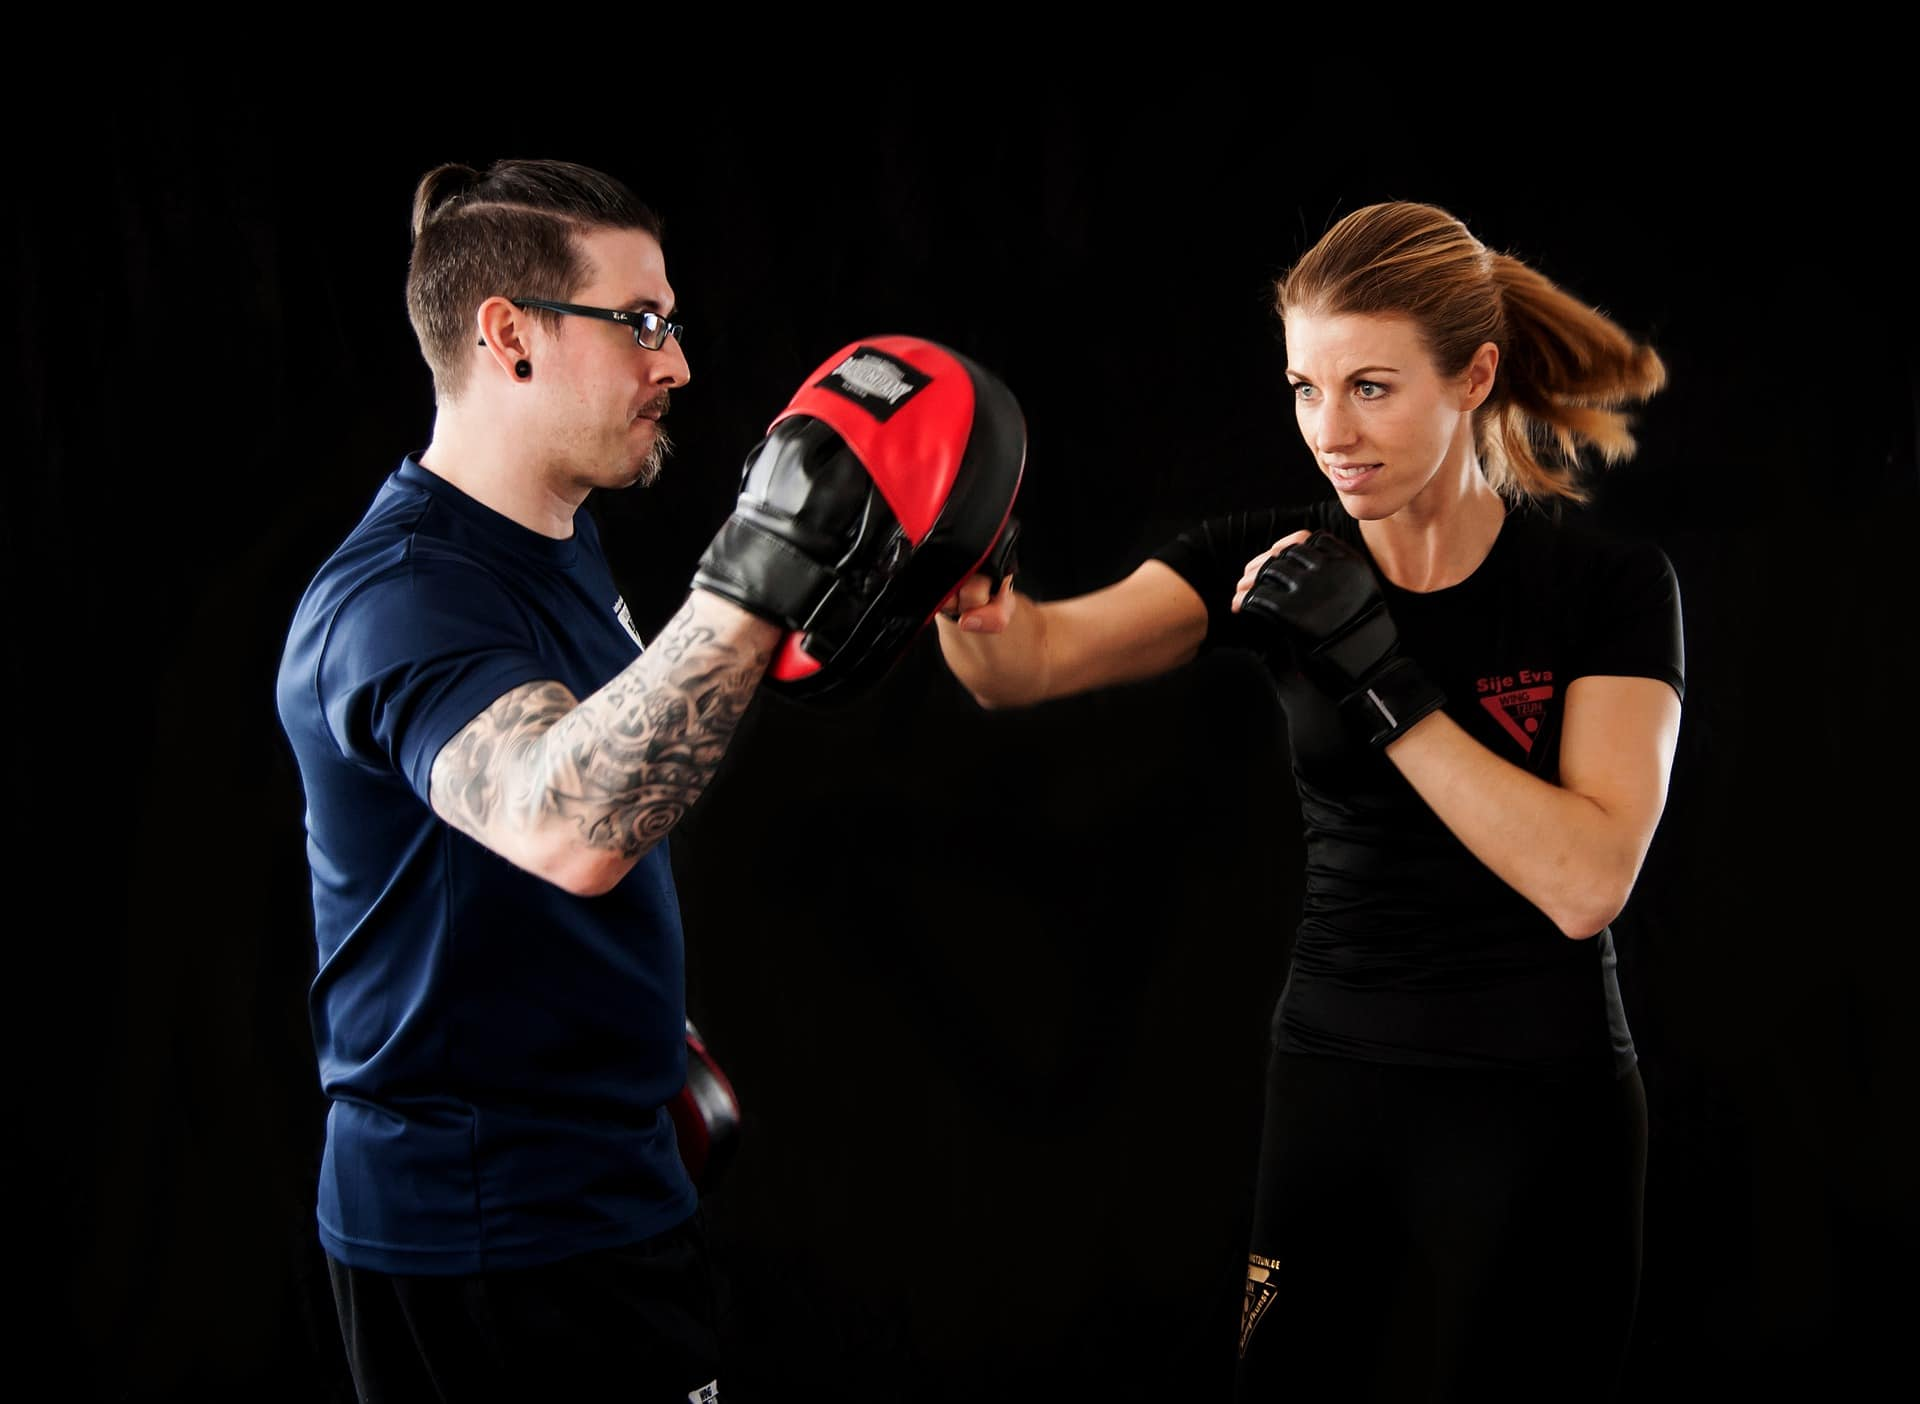 Why Krav Maga and survival skills are so important | 11 things to learn